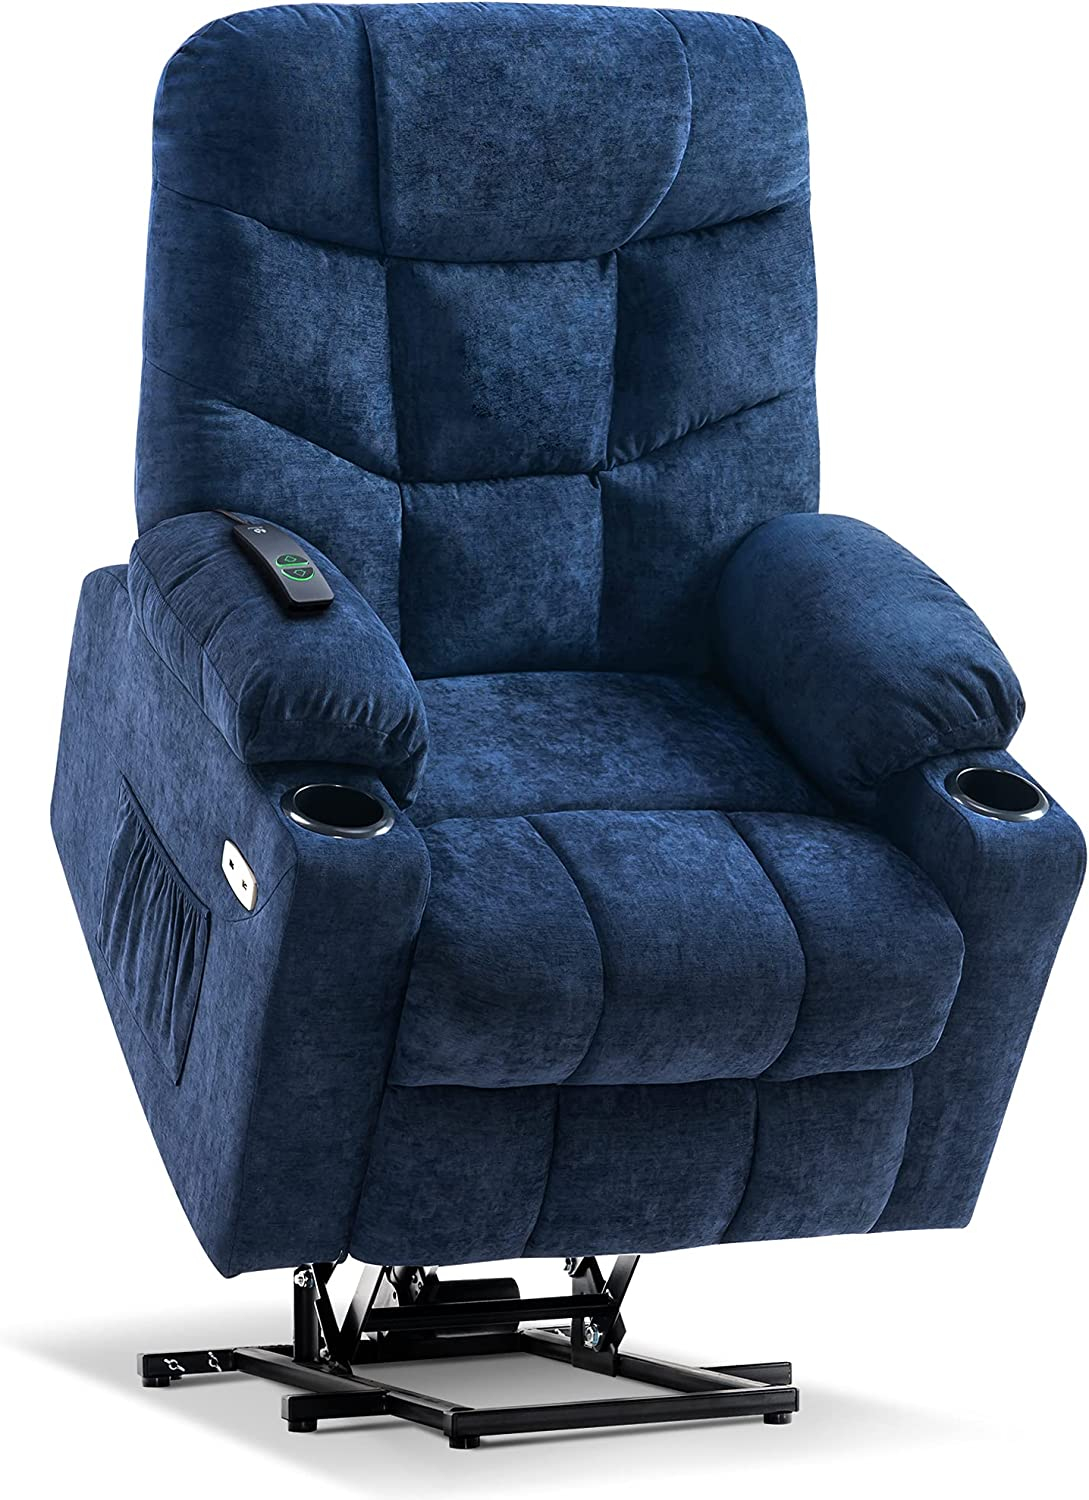 Now free shipping Mcombo Electric Power favorite Lift Recliner Chair Sofa Po for 3 Elderly